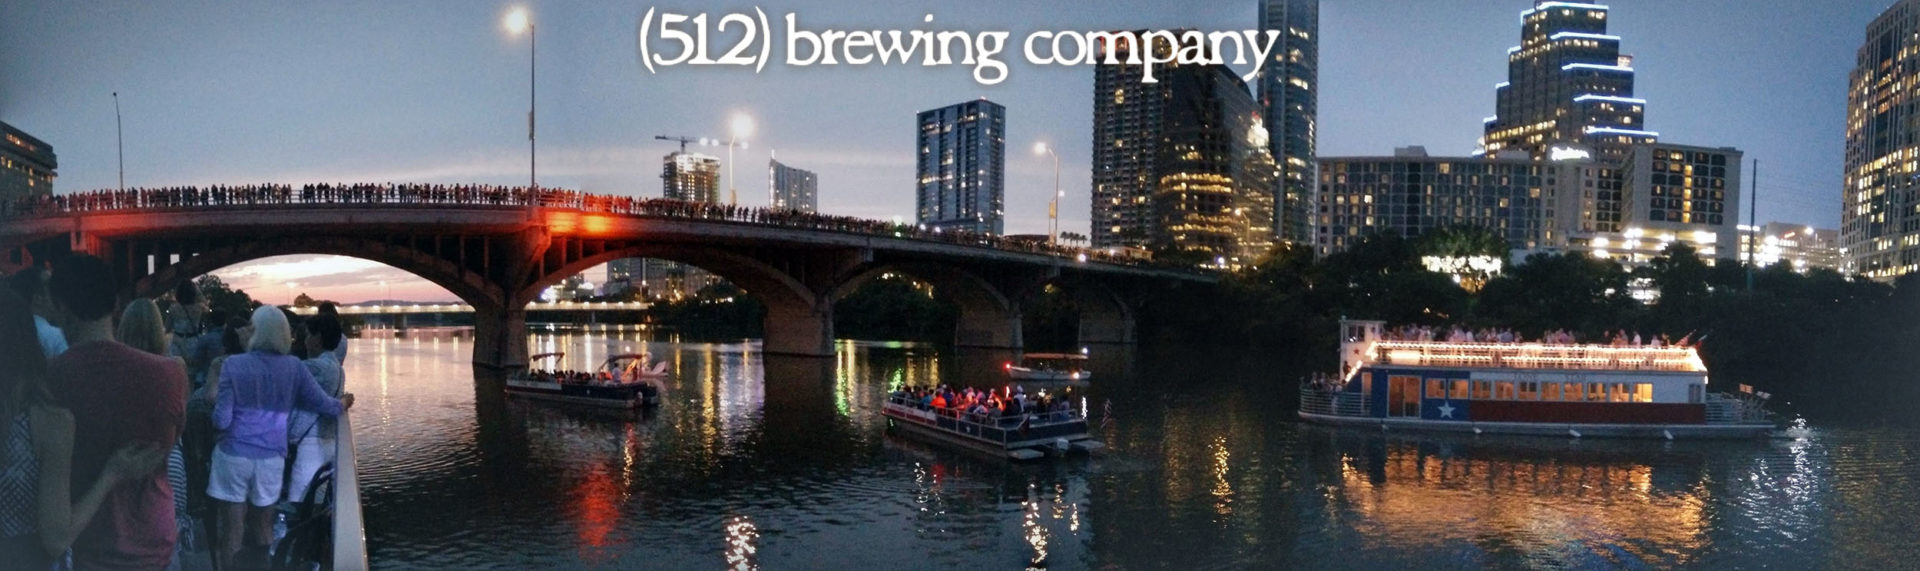 512 Day Bats & Beers Sunset Cruise with (512) Brewing